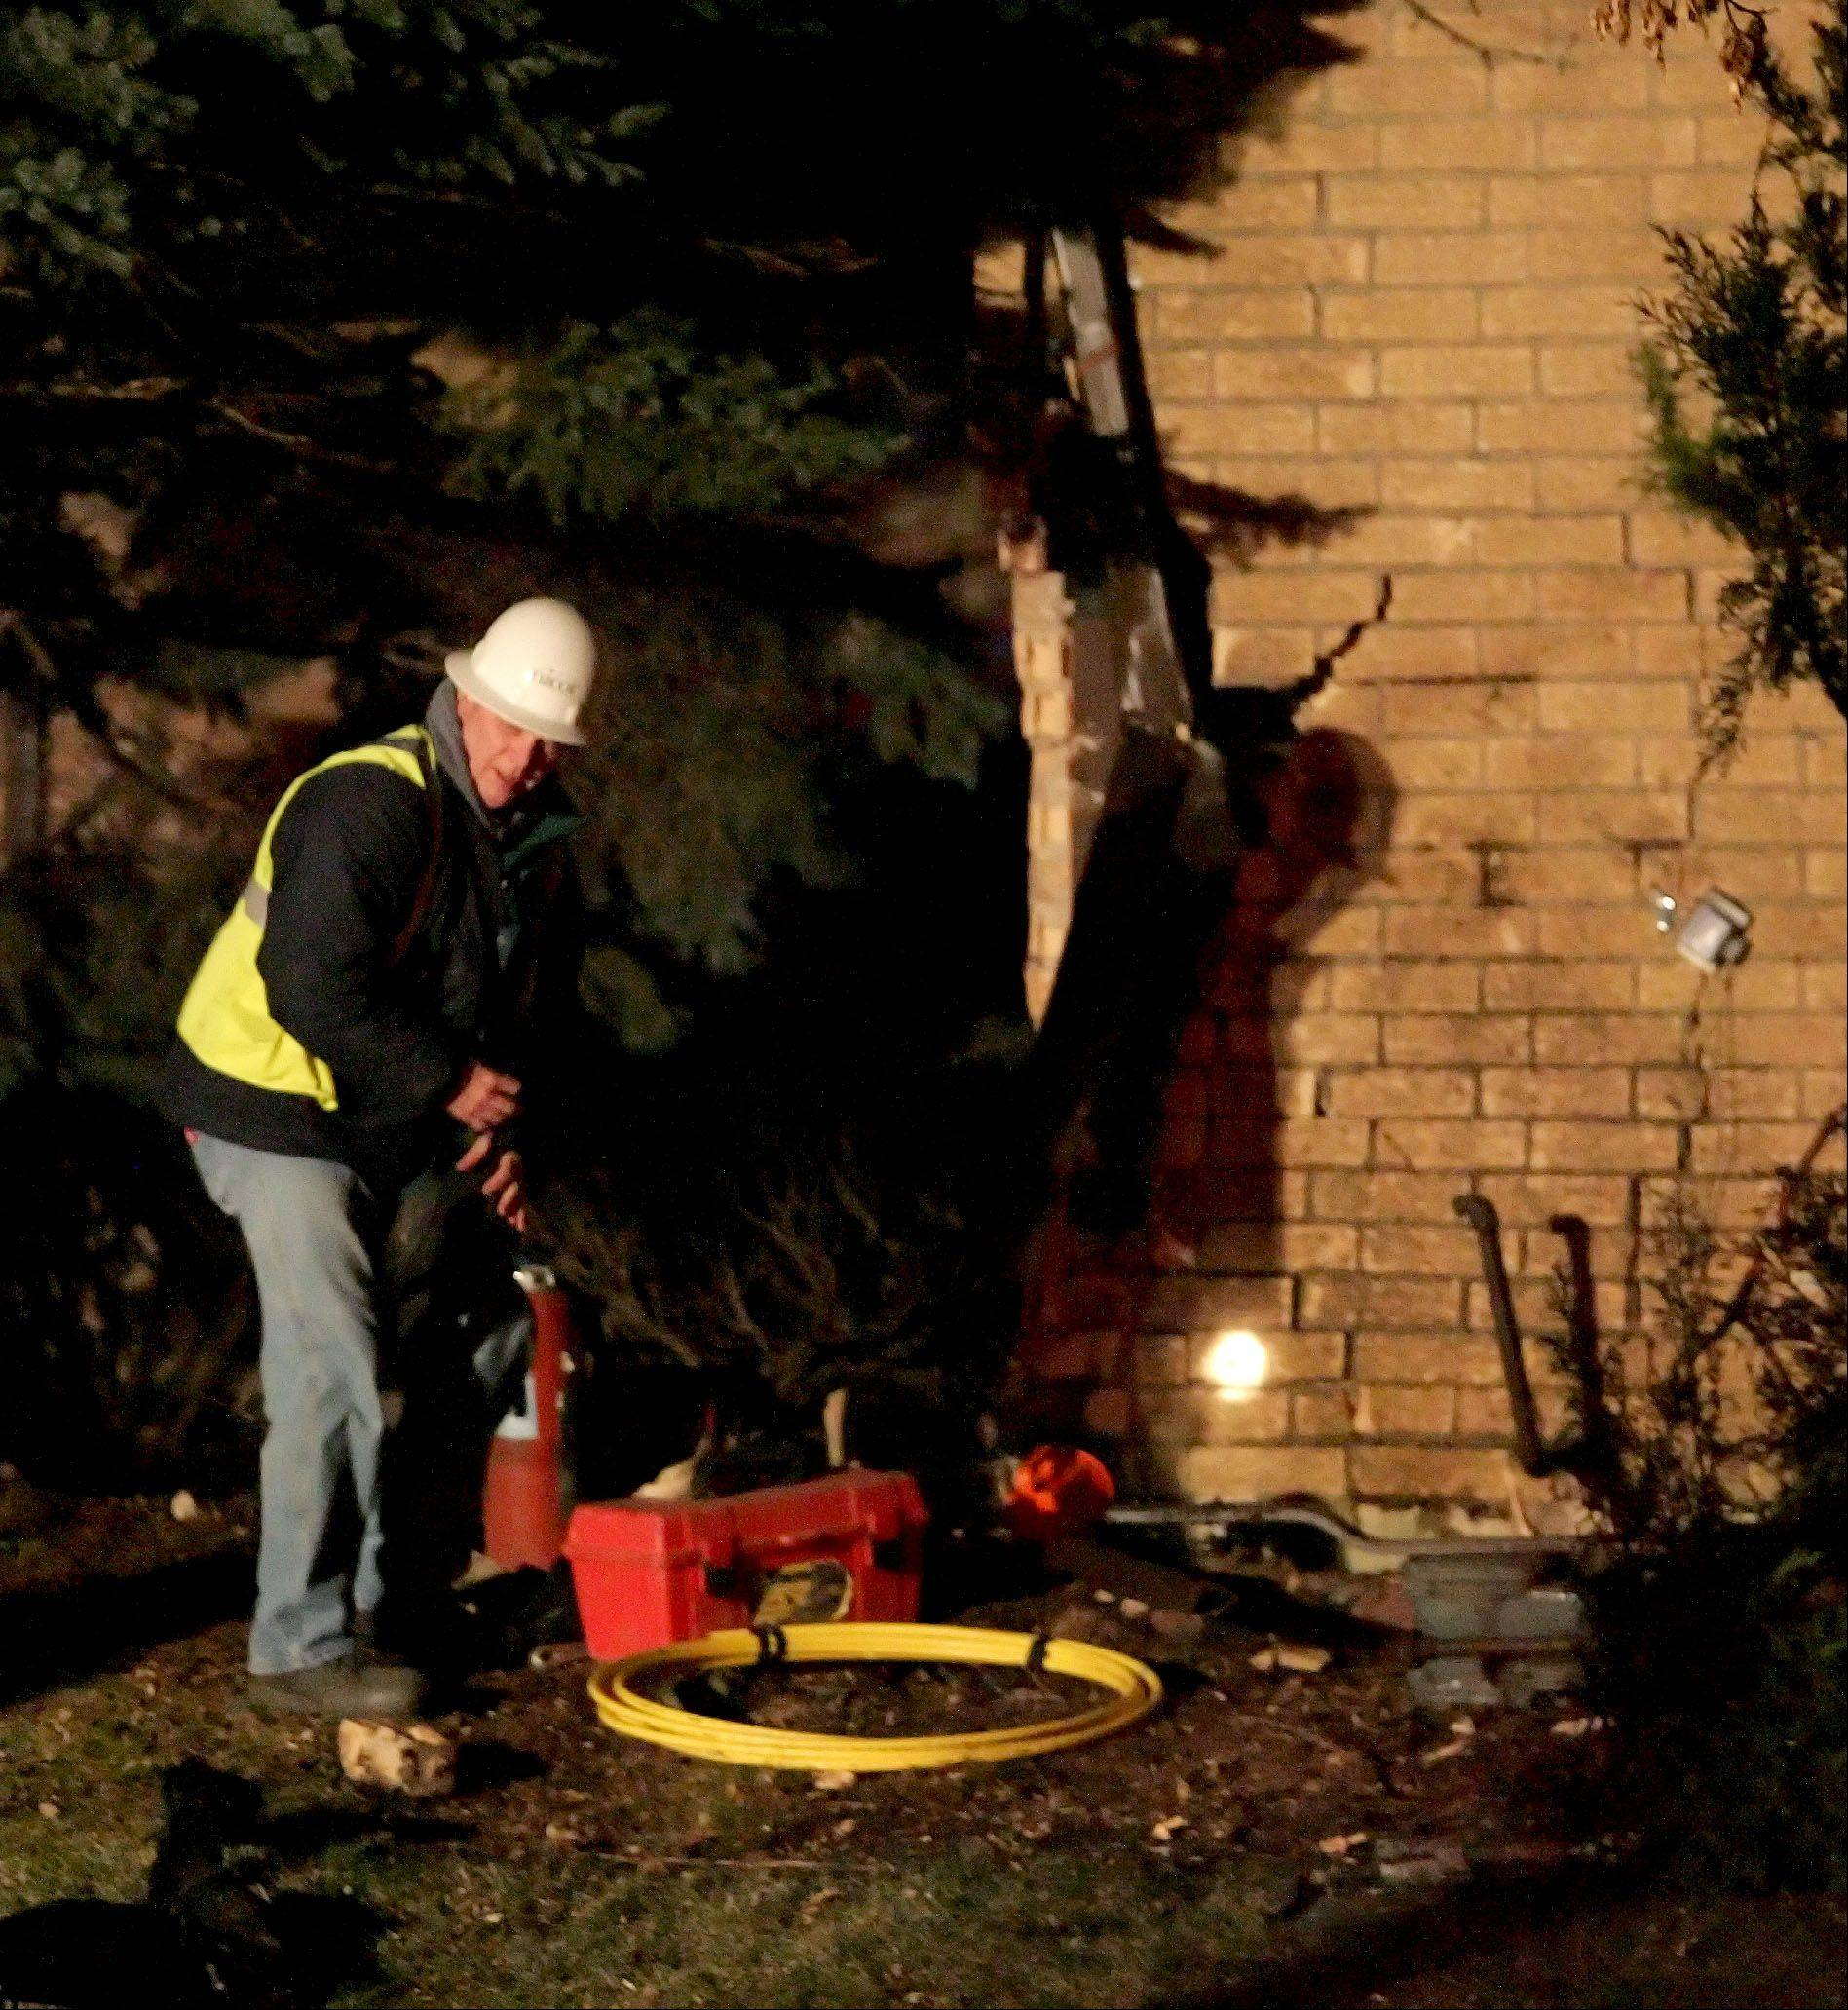 Crews investigate damage done the house of Joan and George Lorenzo after an SUV crashed into their home Tuesday at Farnham Road and Huntleigh Court in Wheaton.